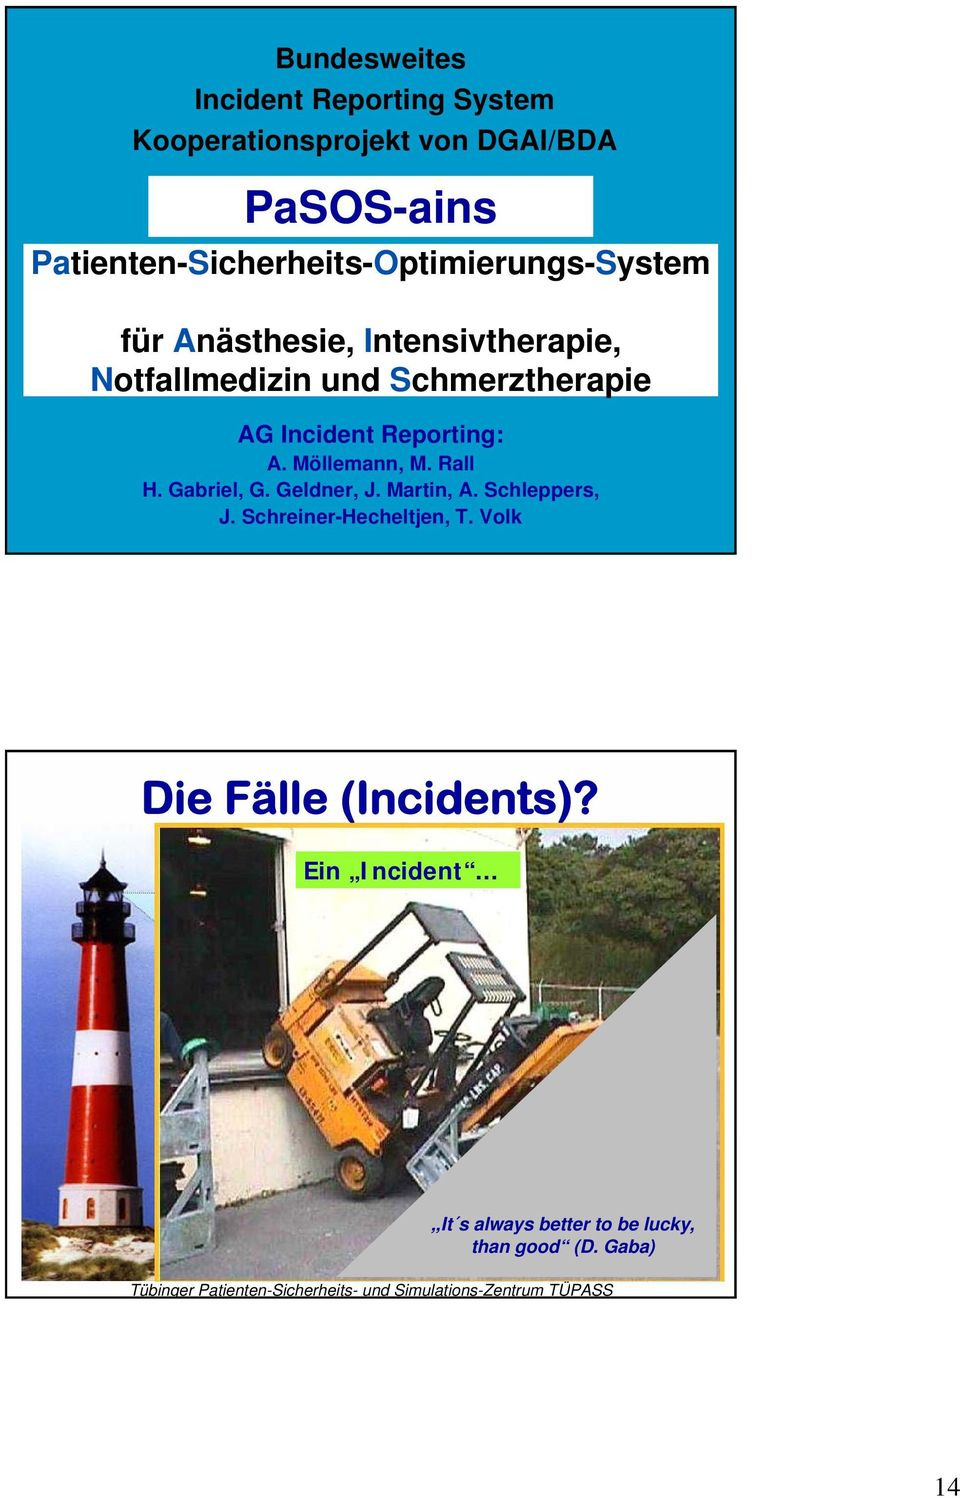 Geldner, J. Martin, A. Schleppers, J. Schreiner-Hecheltjen, T. Volk Die Fälle (Incidents)? Ein Incident... Incidents?